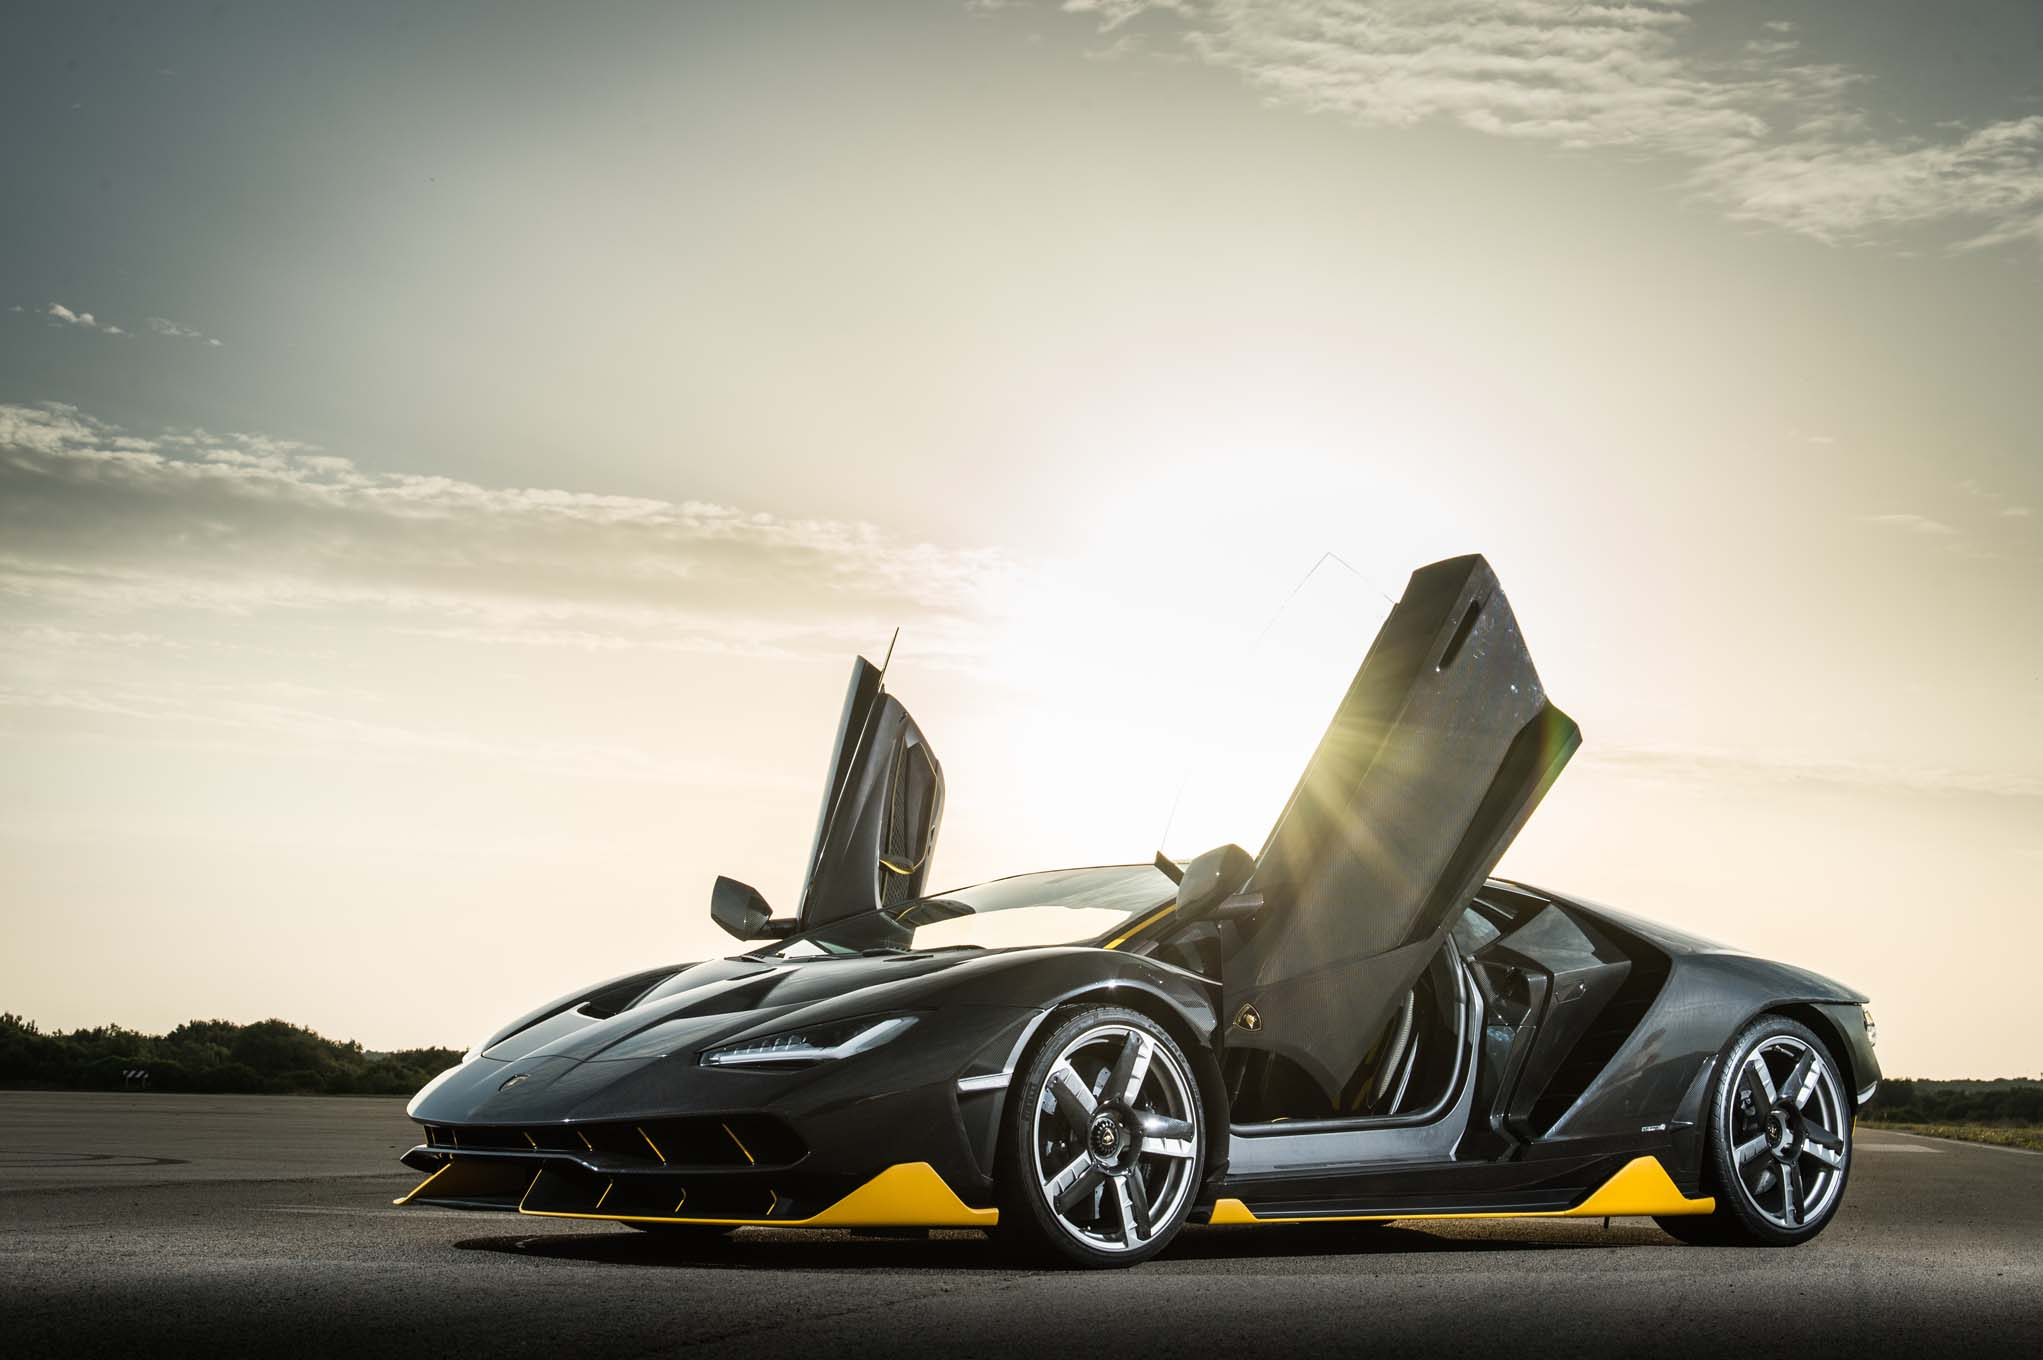 Lamborghini Centenario LP 770 4 Front Three Quarter Doors Open